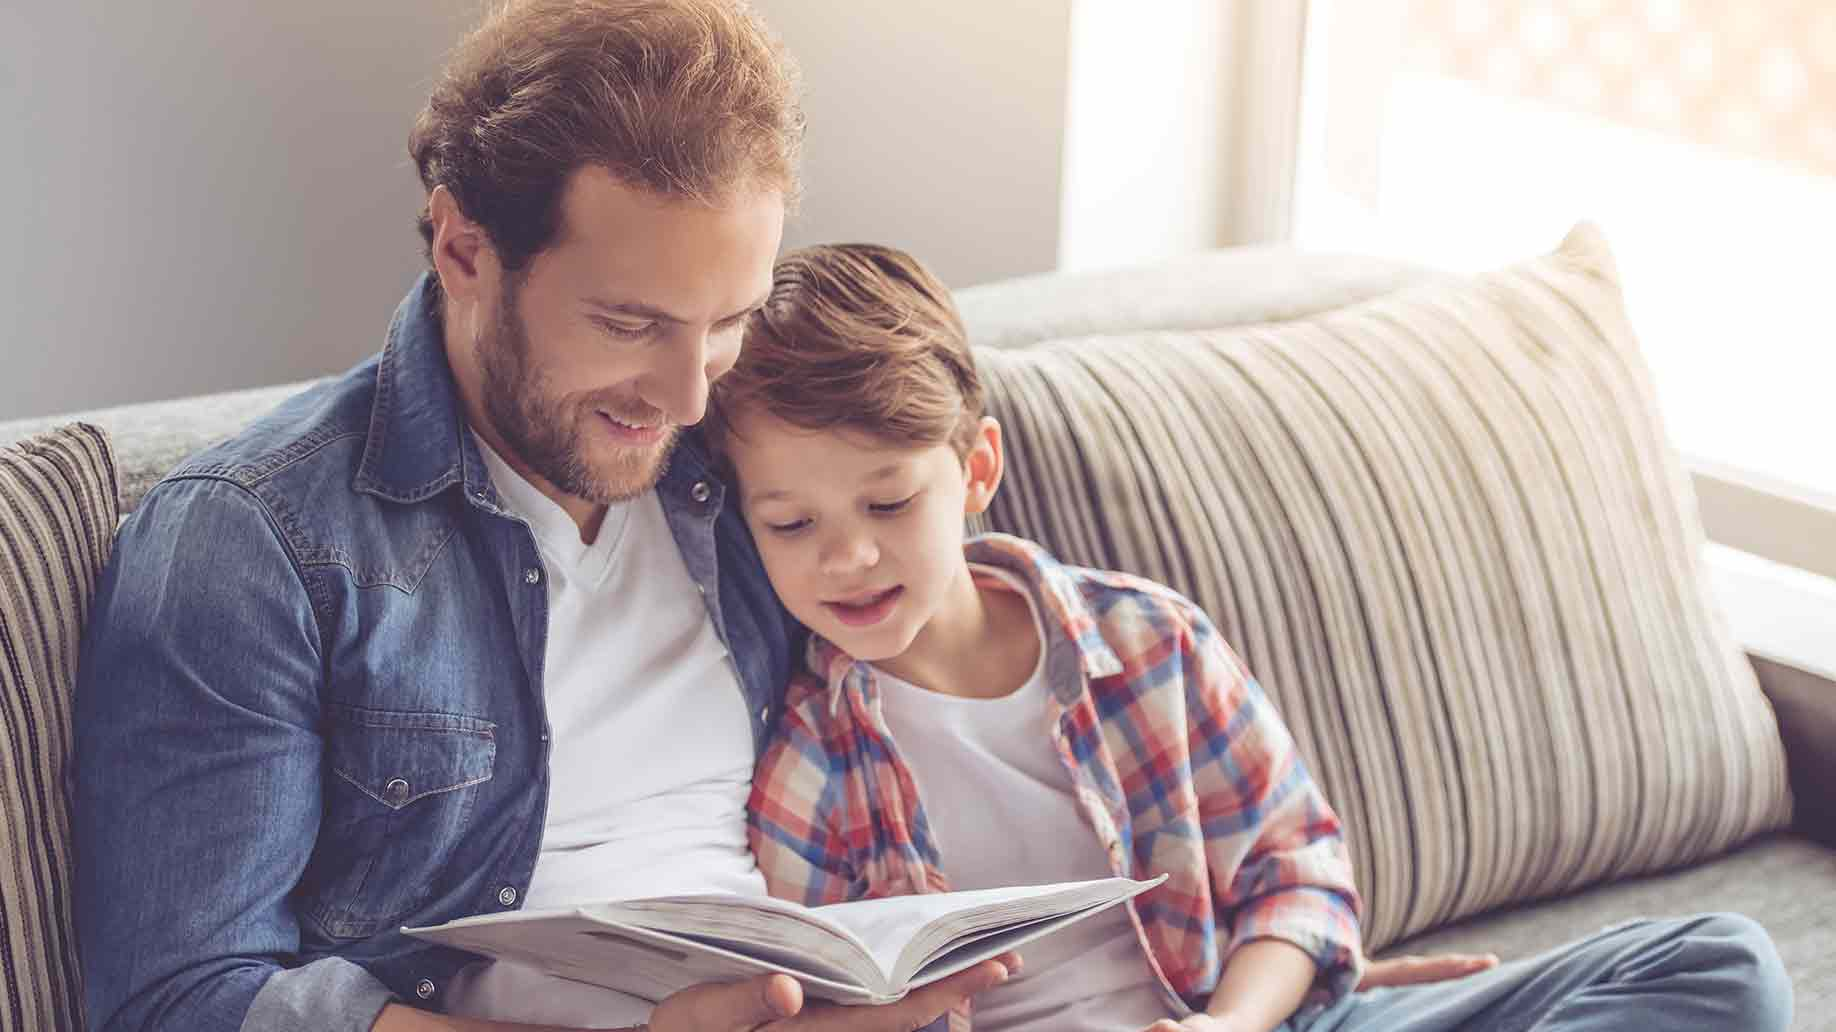 father son reading book smiling while